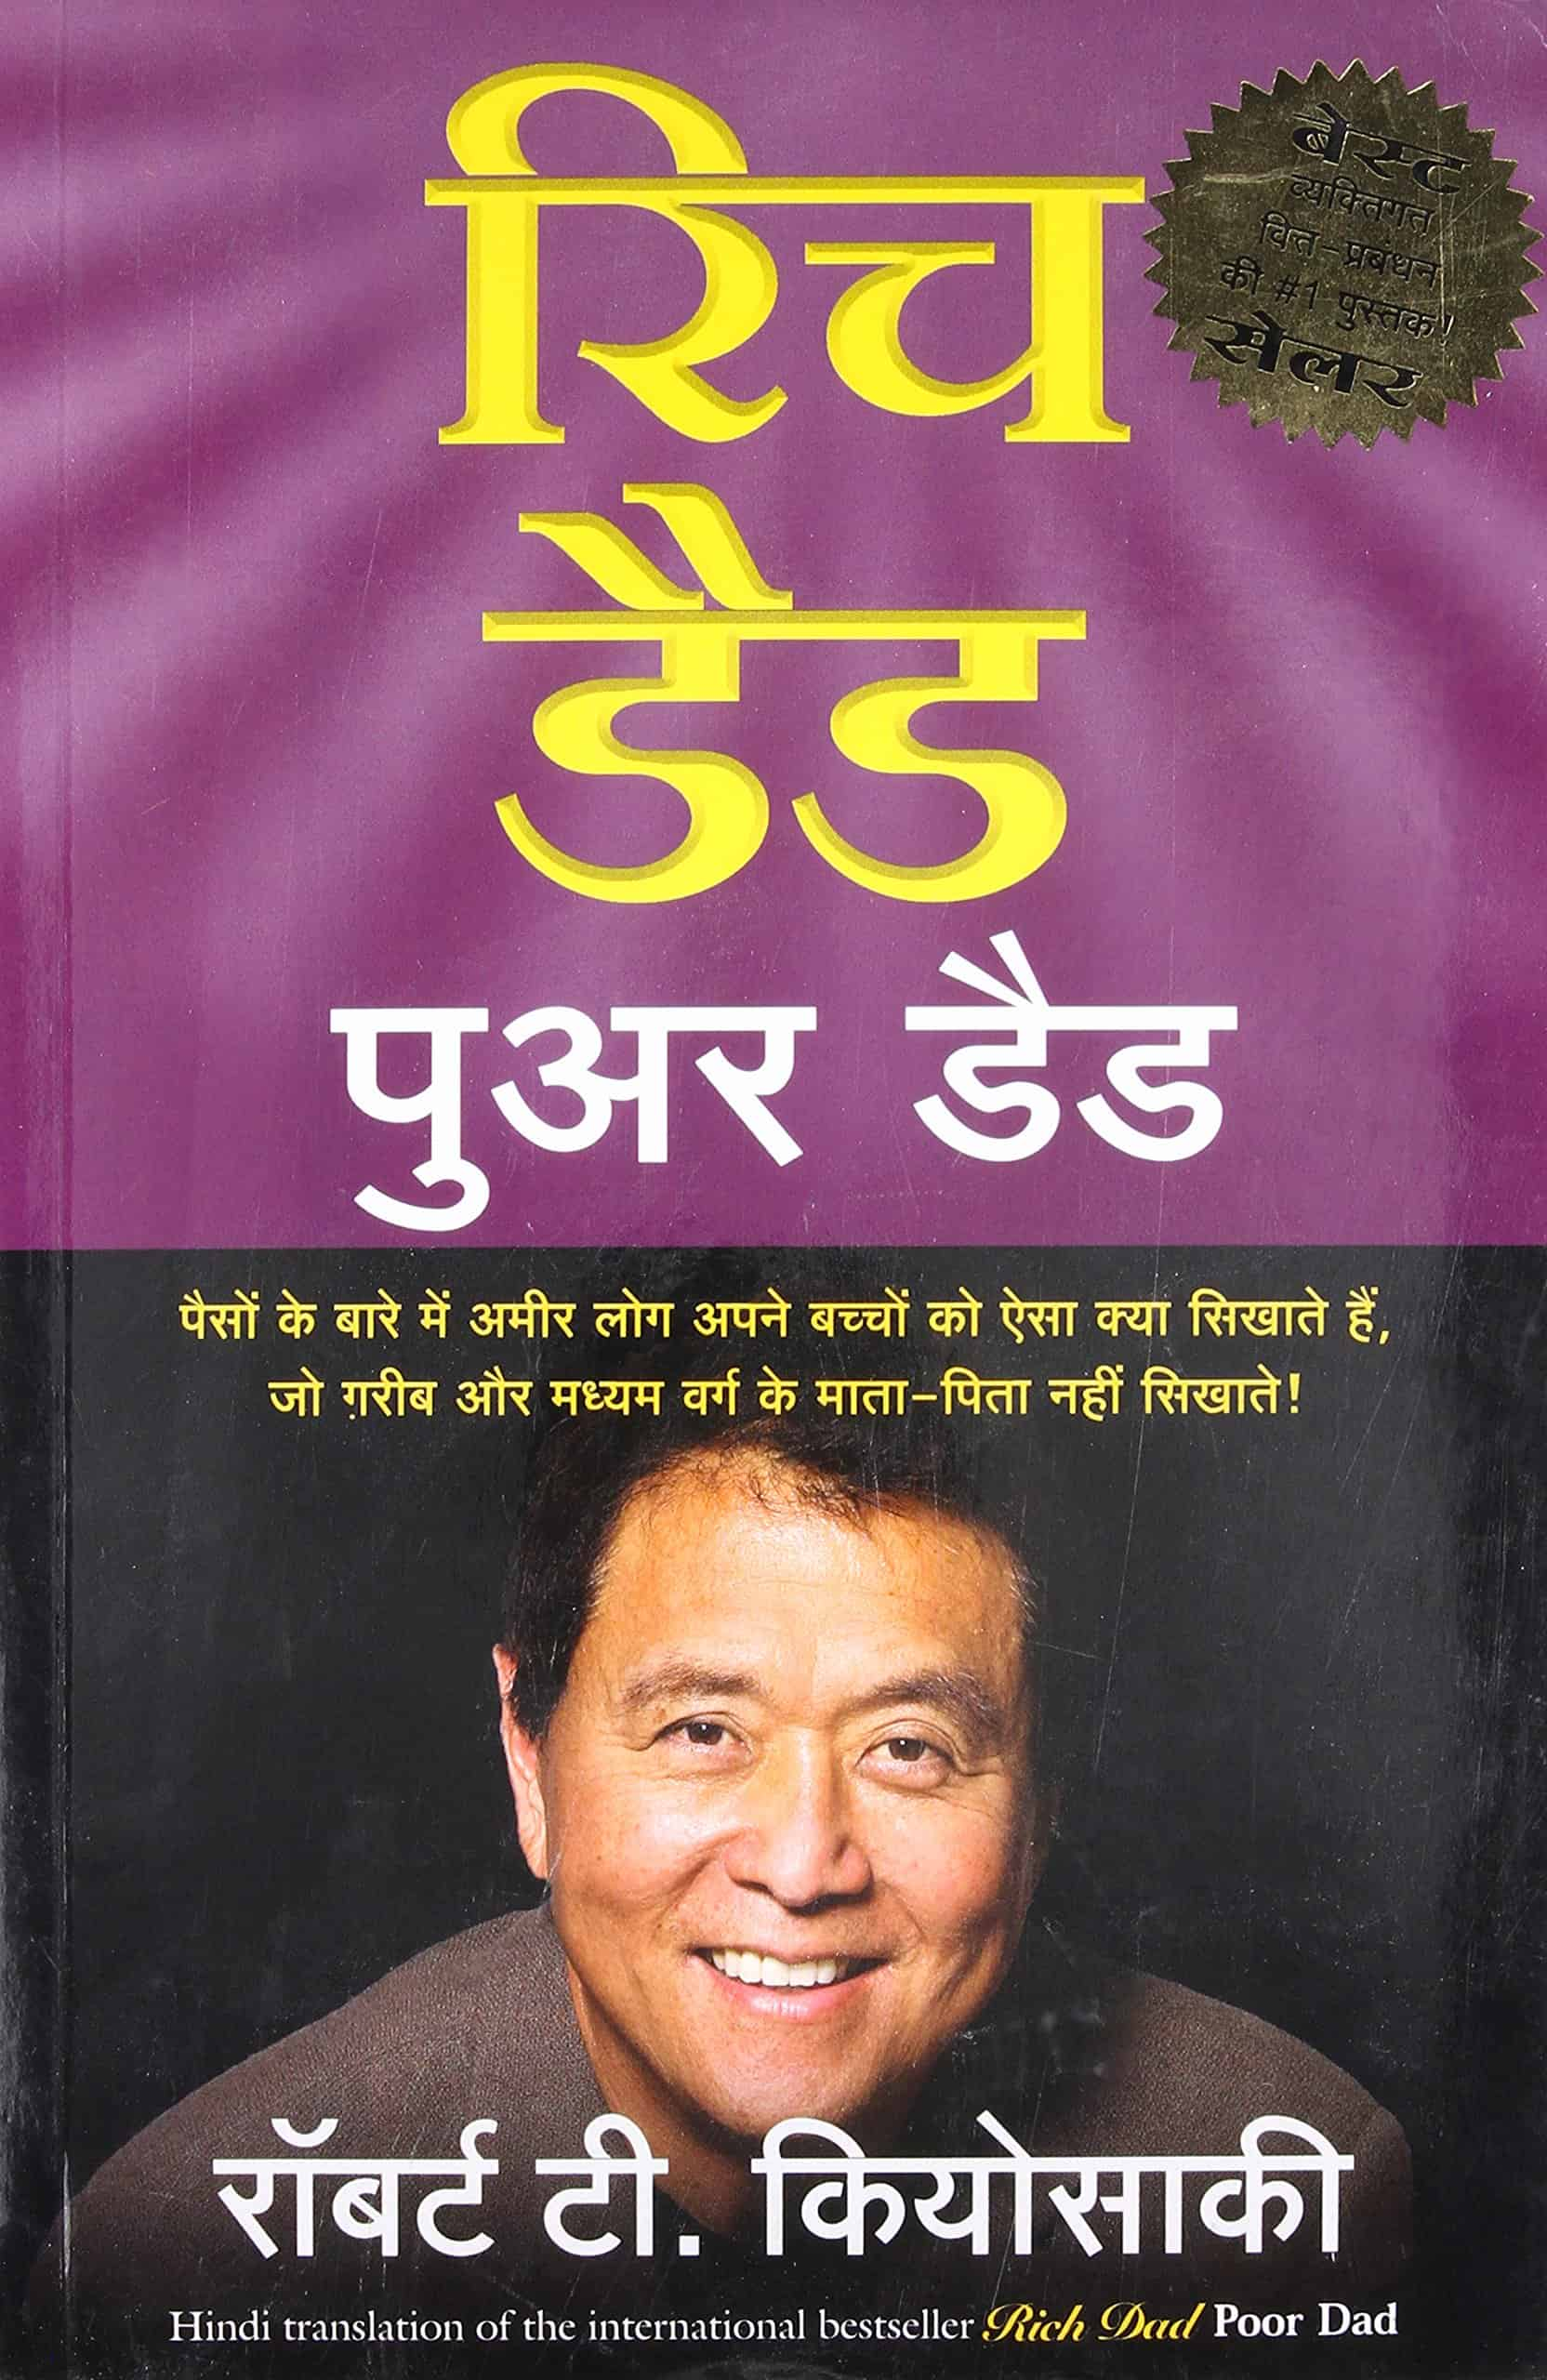 Robert Kiyosaki Audiolibros Gratis Mp3 Rich Dad Poor Dad In Hindi Free Pdf Download Satish Kushwaha